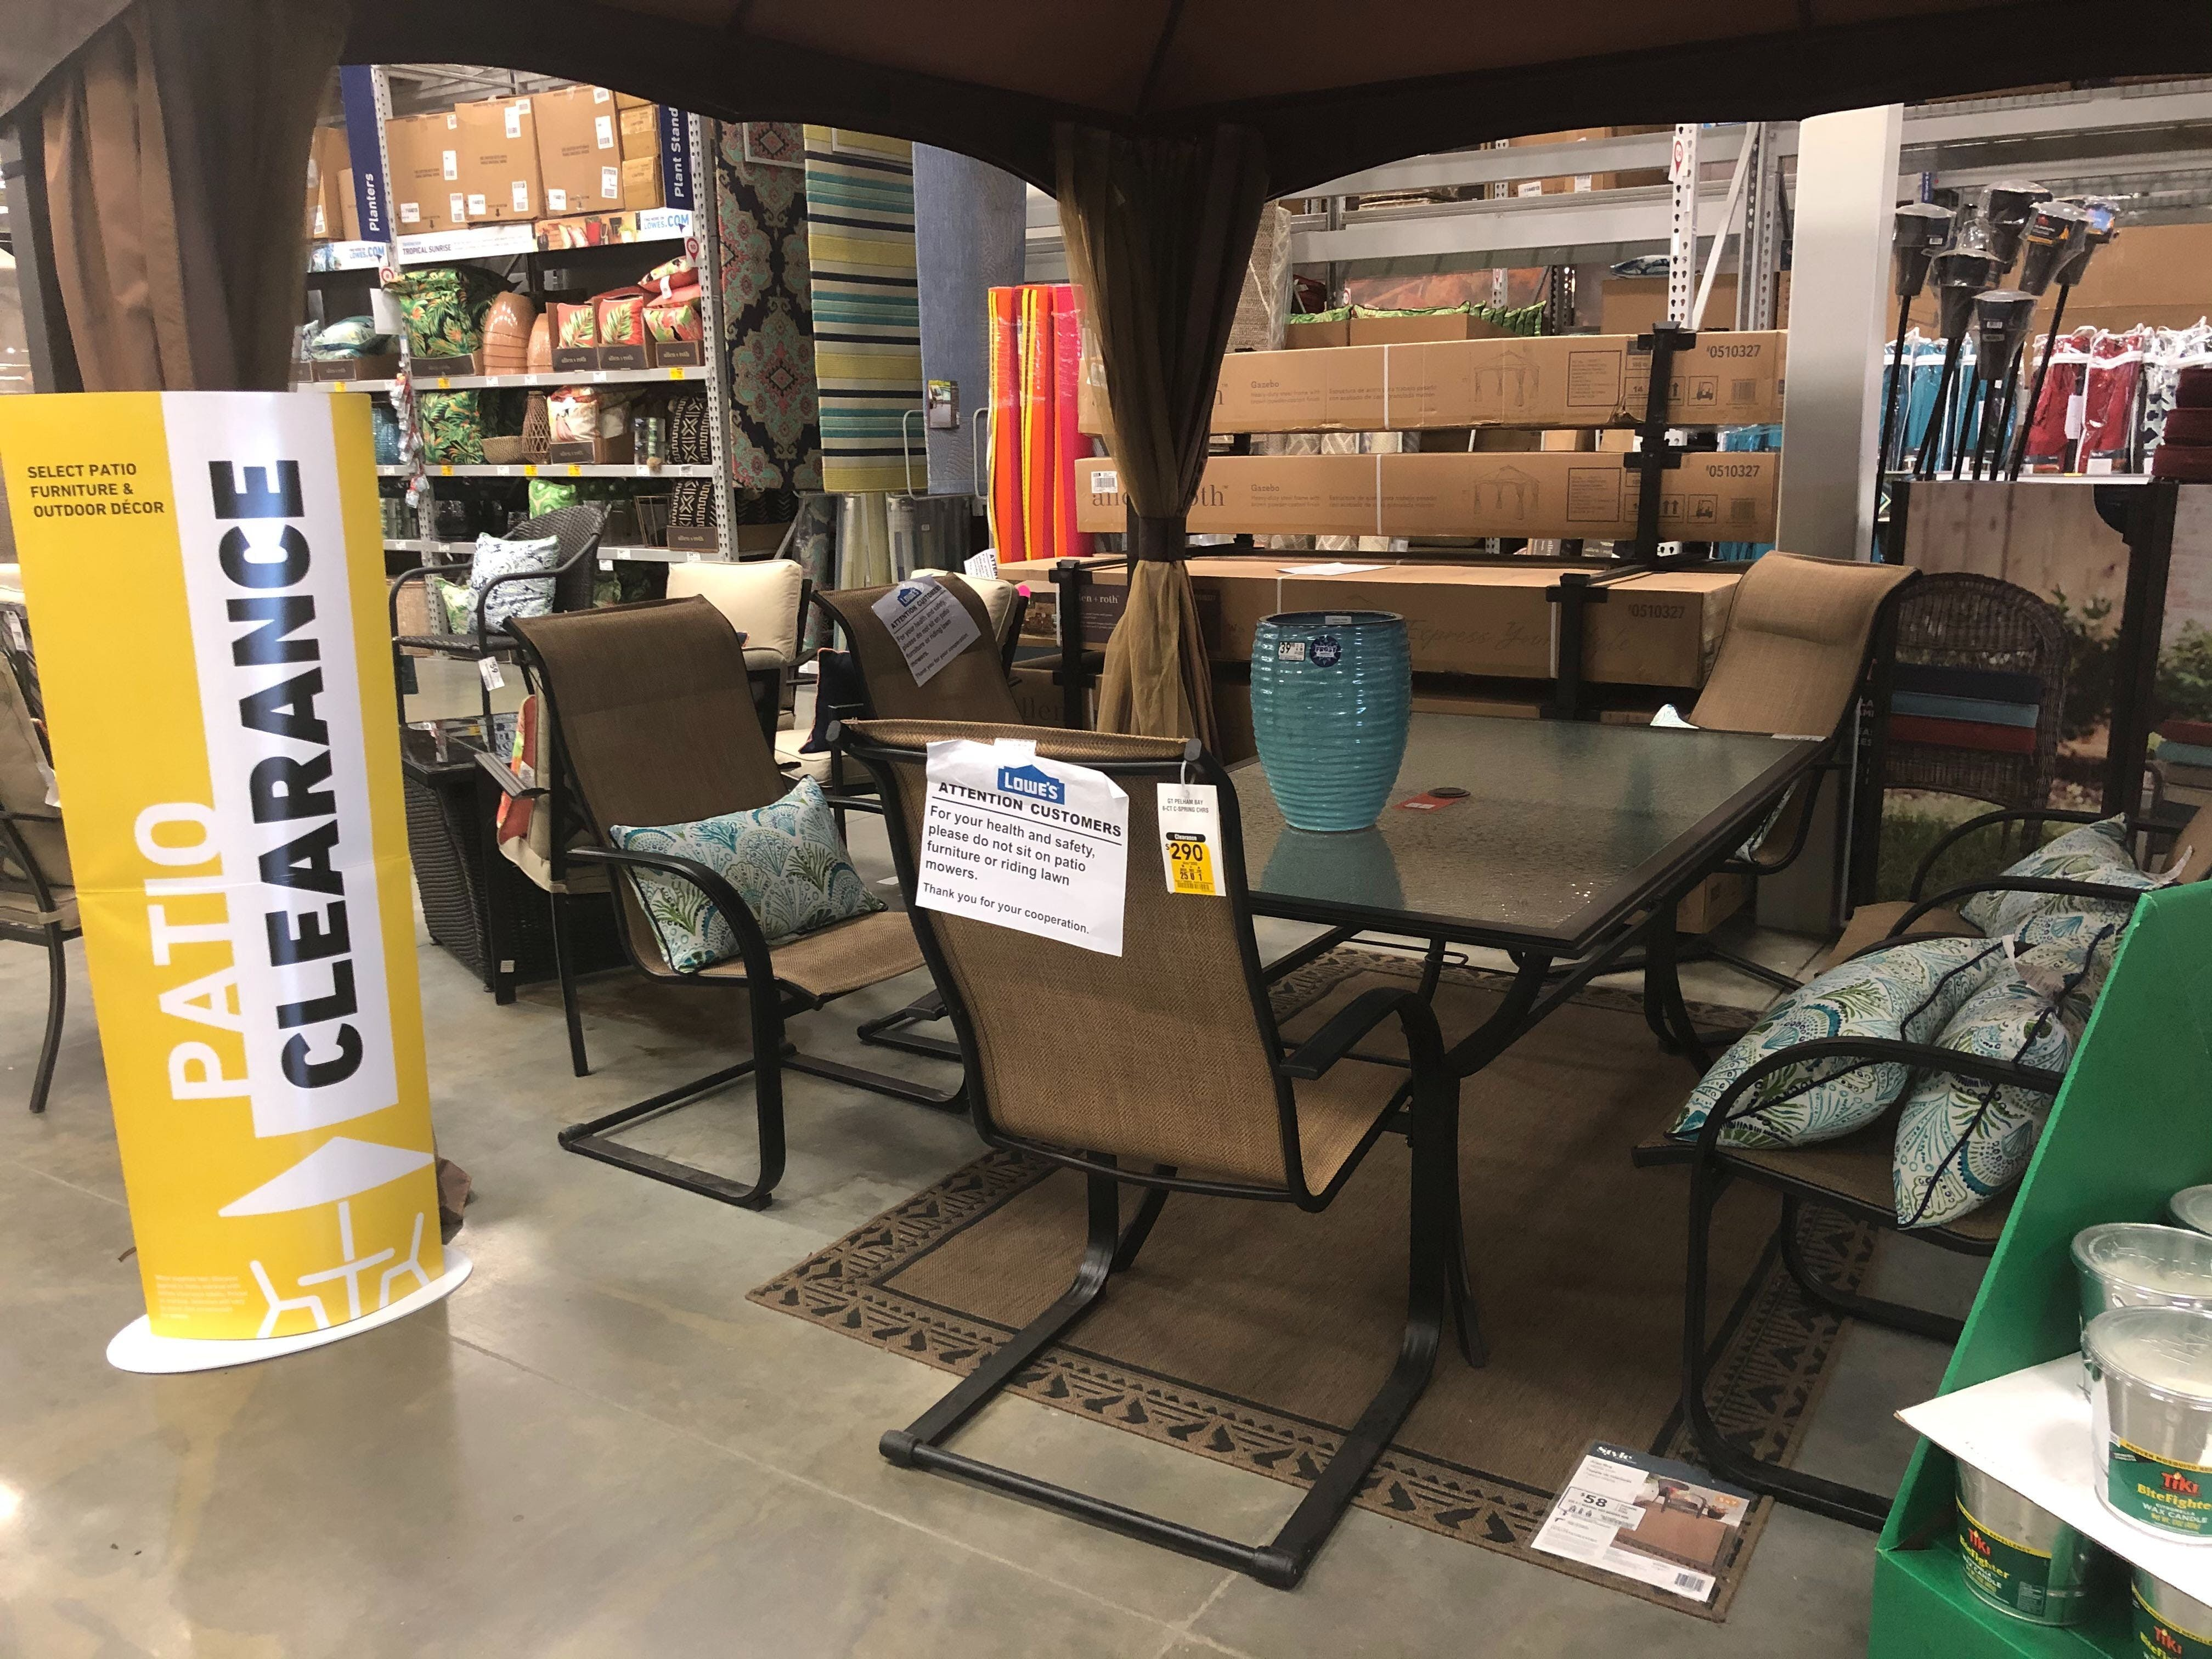 Patio Furniture Clearance Has Started At Lowe S The Krazy Coupon Lady